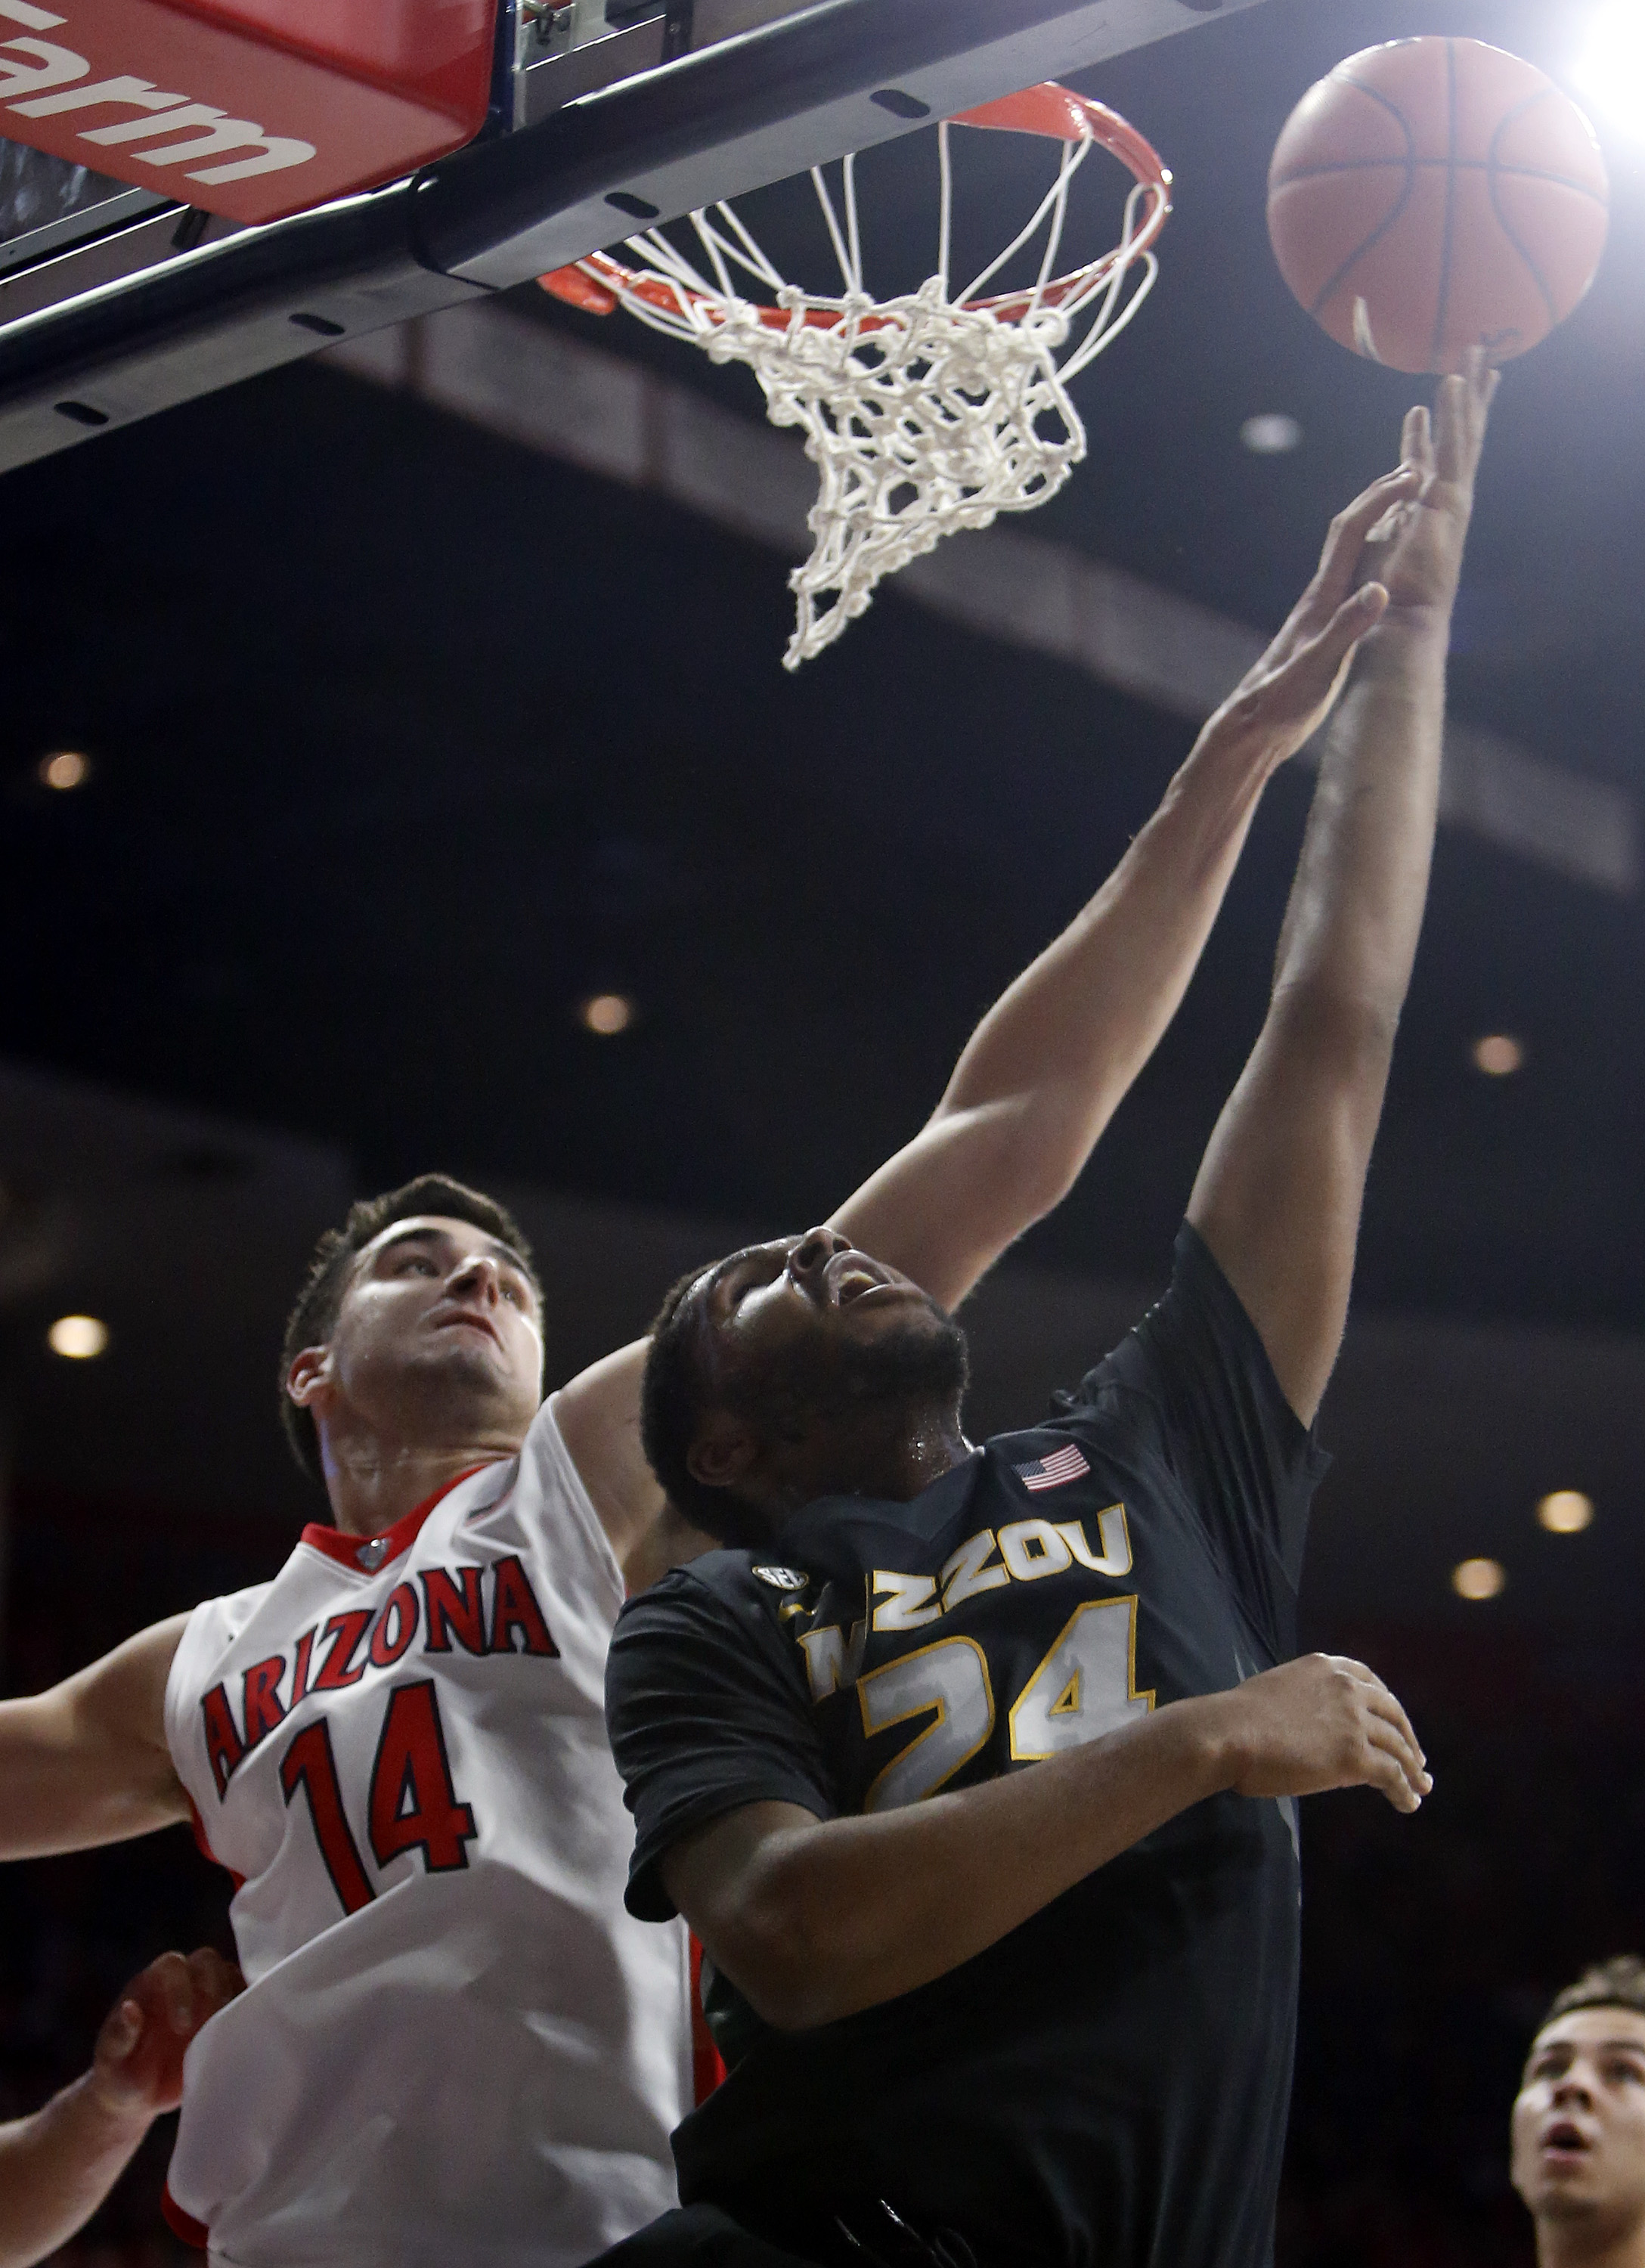 Missouri forward Kevin Puryear shoots in front of Arizona center Dusan Ristic (14) during the first half of an NCAA college basketball game, Sunday, Dec. 13, 2015, in Tucson, Ariz. (AP Photo/Rick Scuteri)